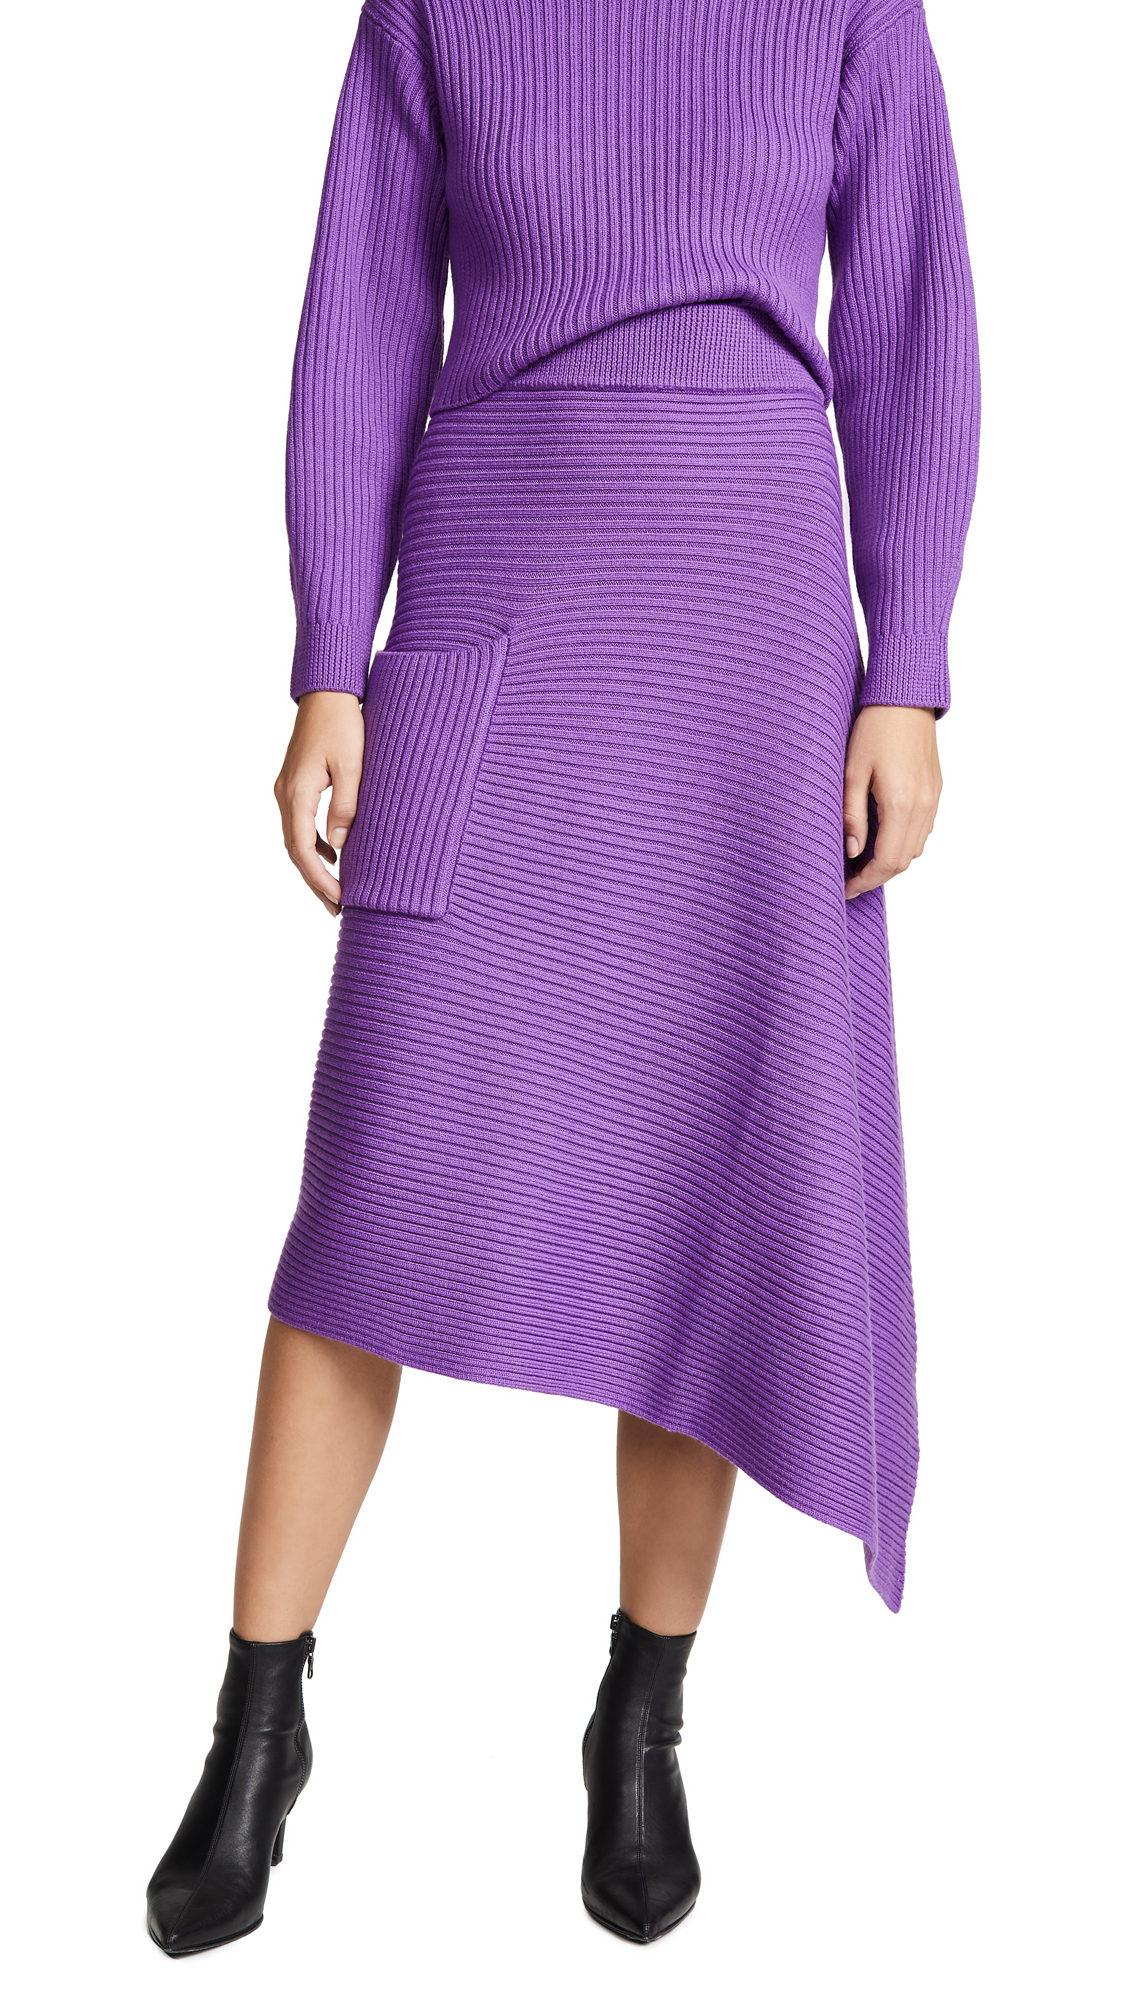 Tibi Origami Wrap Skirt - Purple